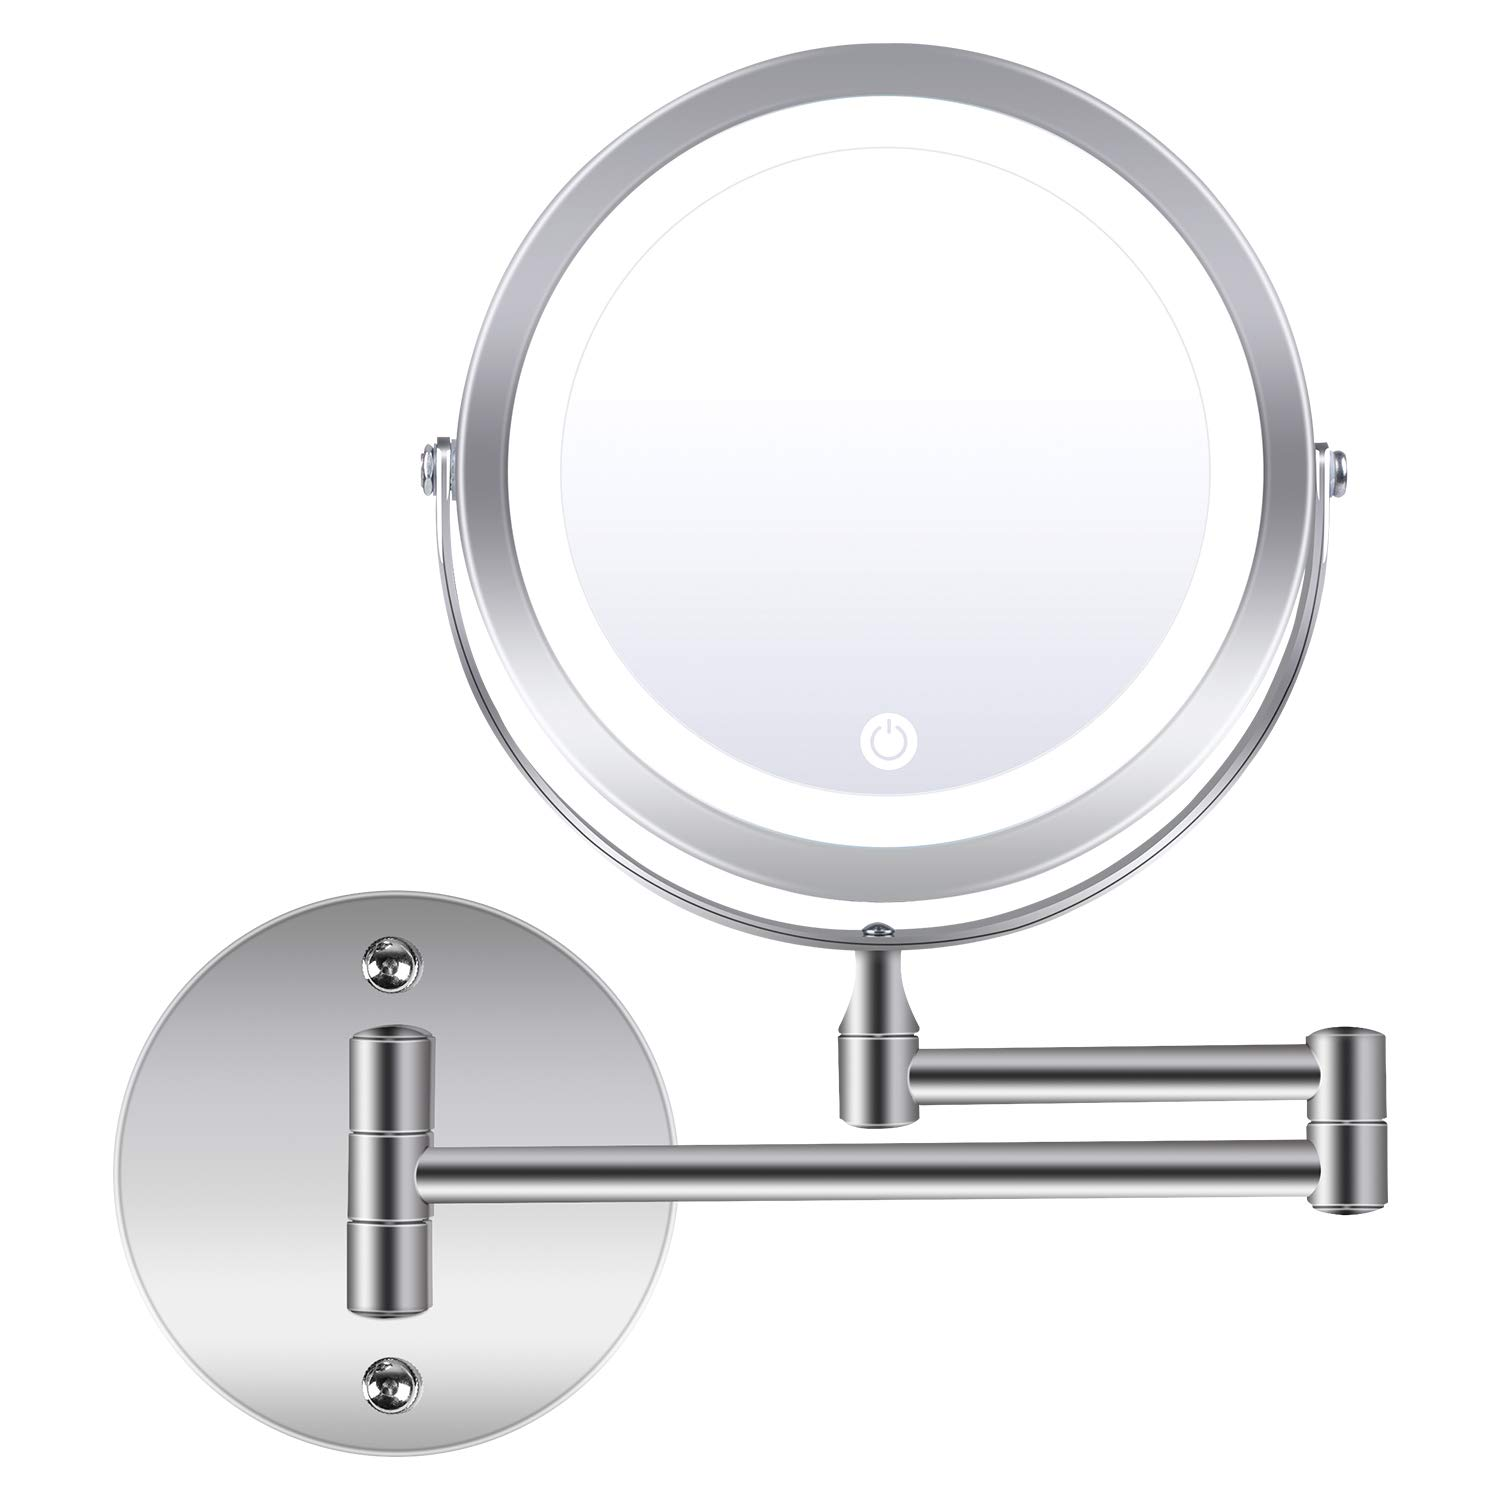 LED Lighted Makeup Mirror Wall Mount, 1X/10X Magnifying Vanity Mirror with Lights, Double Sided 360 Degree Rotation LED Vanity Mirror Lights, AC Adapter or Battery Operated